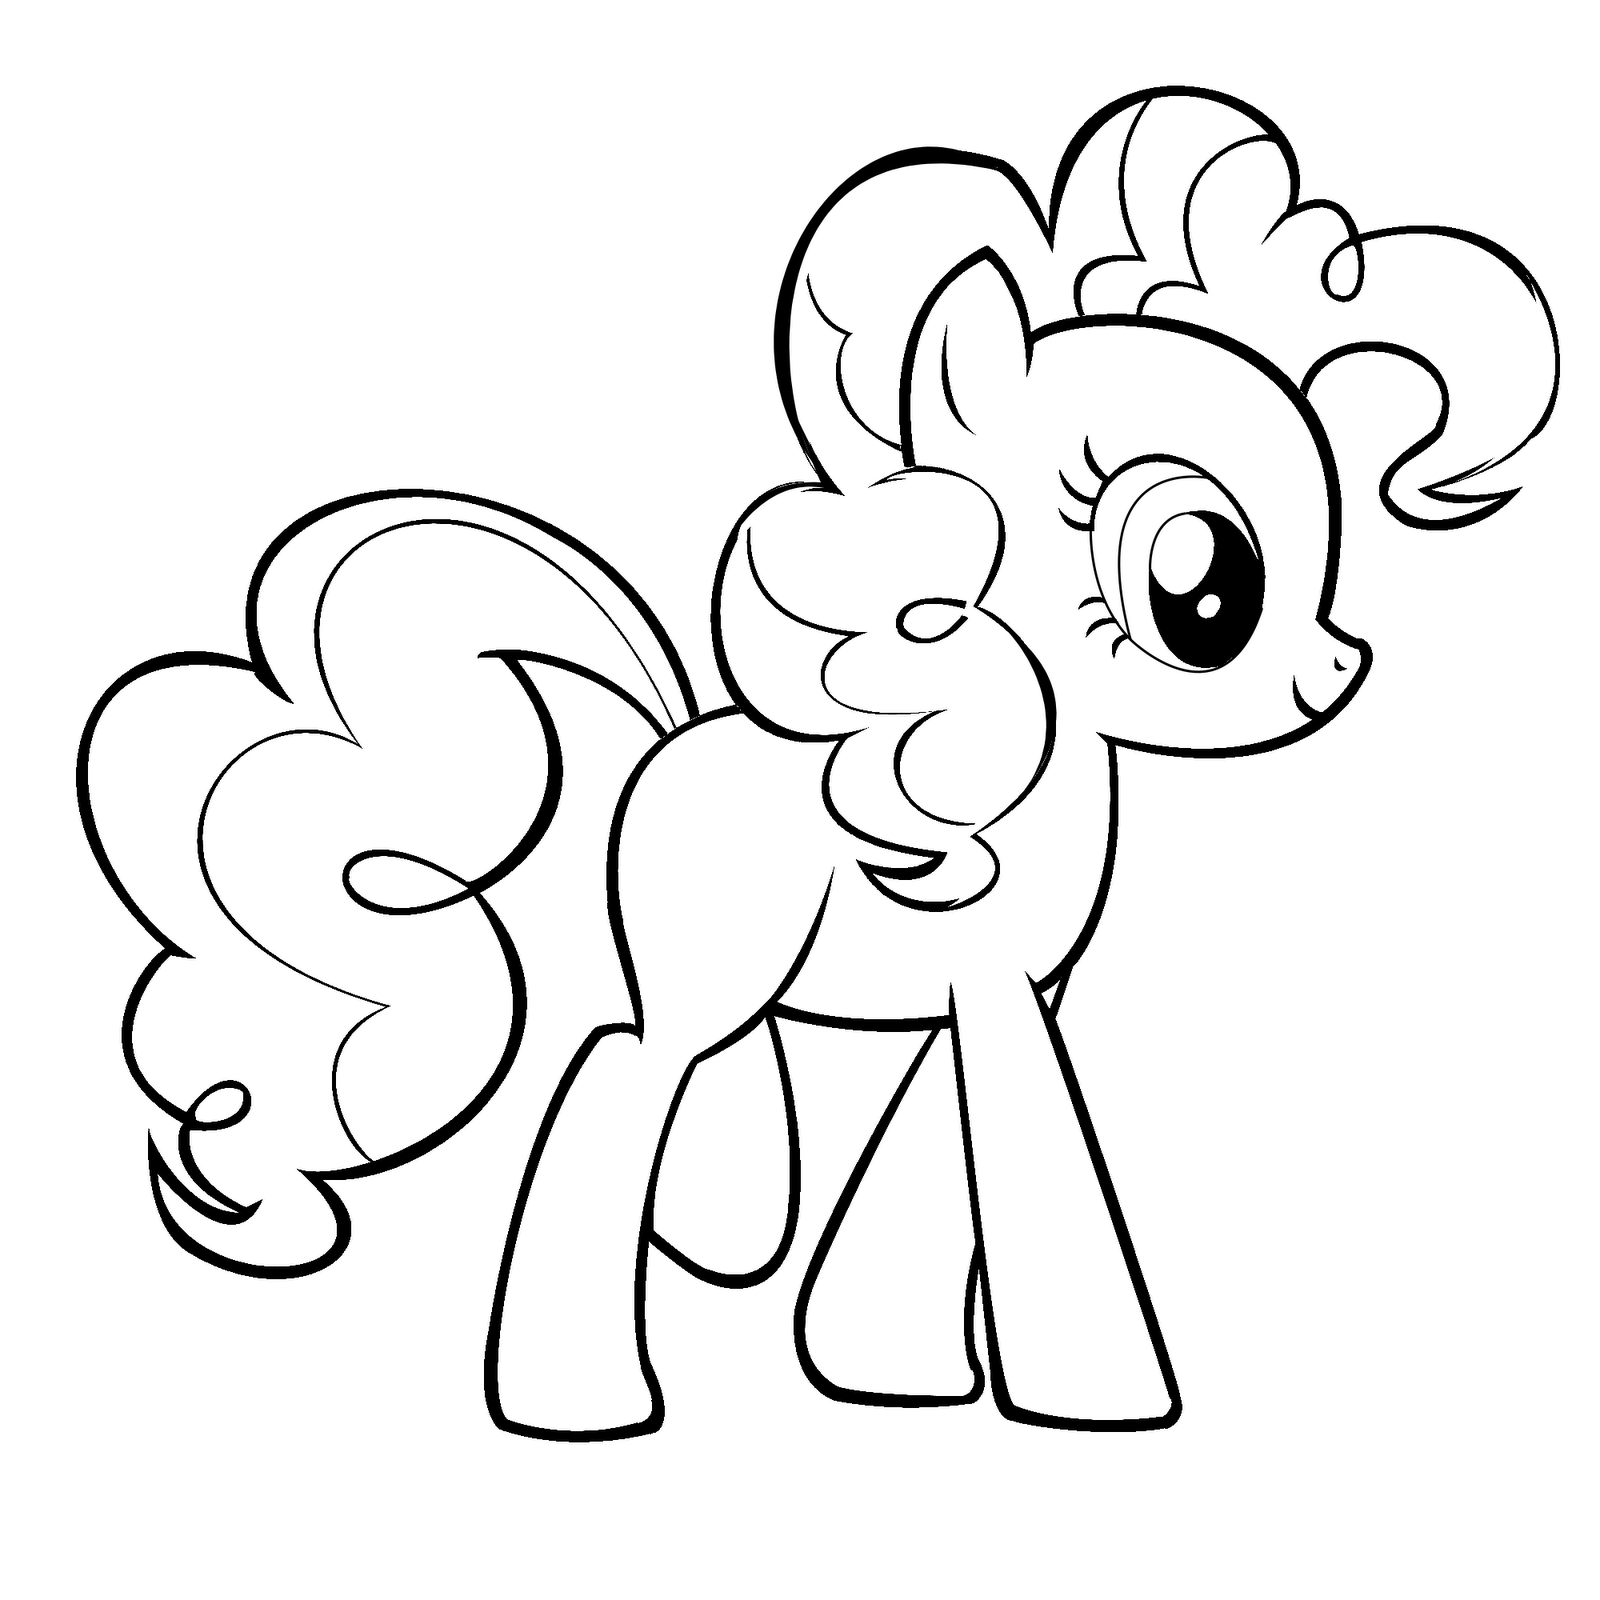 pinkie pie coloring pages my little pony pinkie pie coloring pages pinkie pie coloring pages